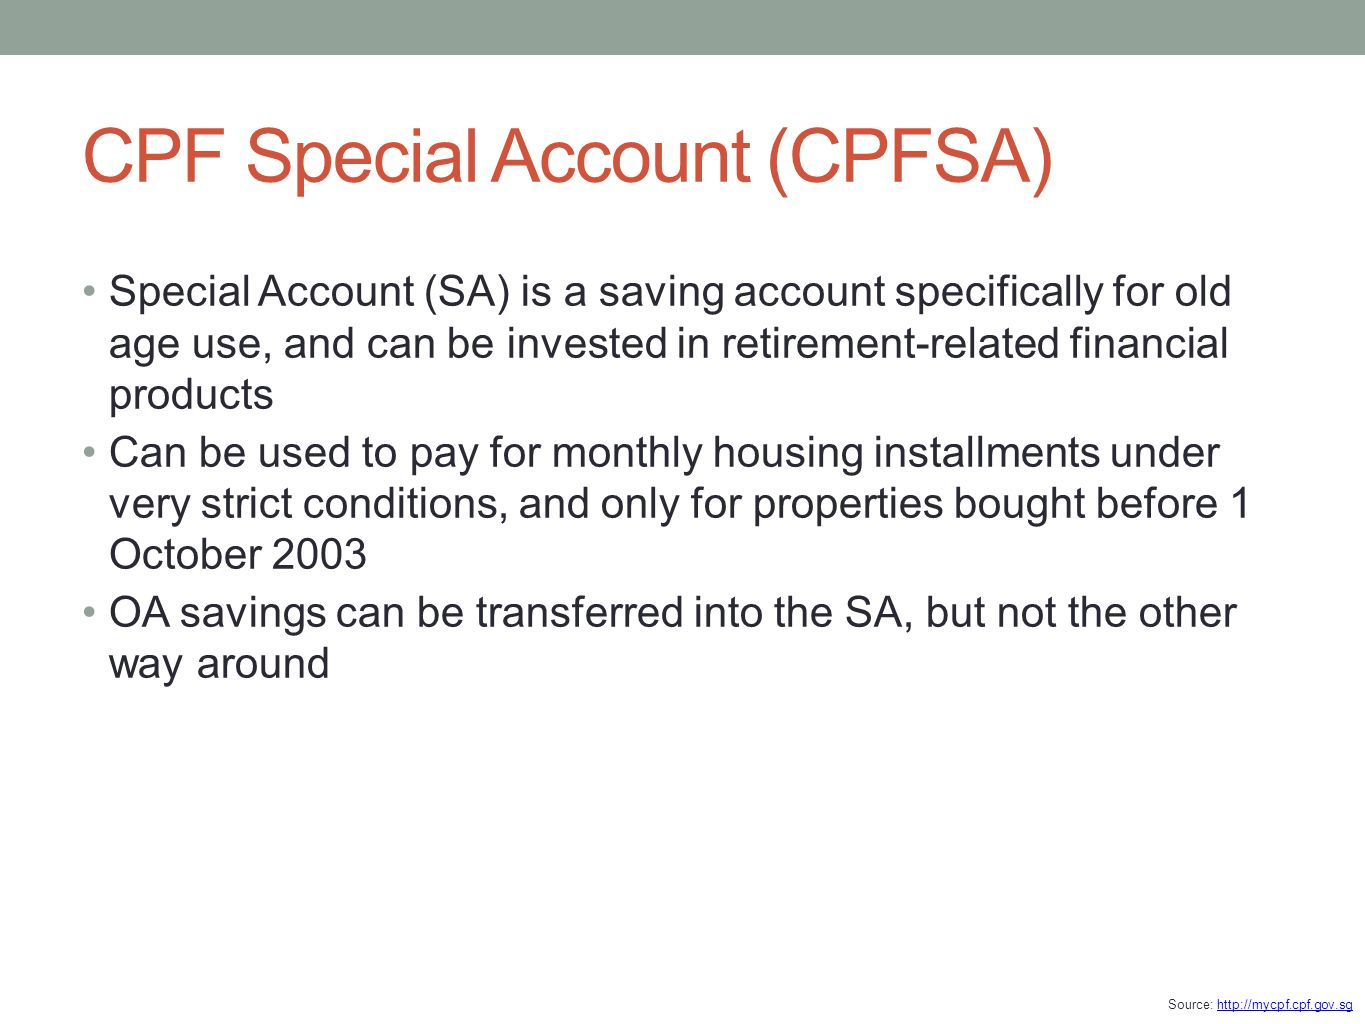 CPF Special Account (CPFSA)